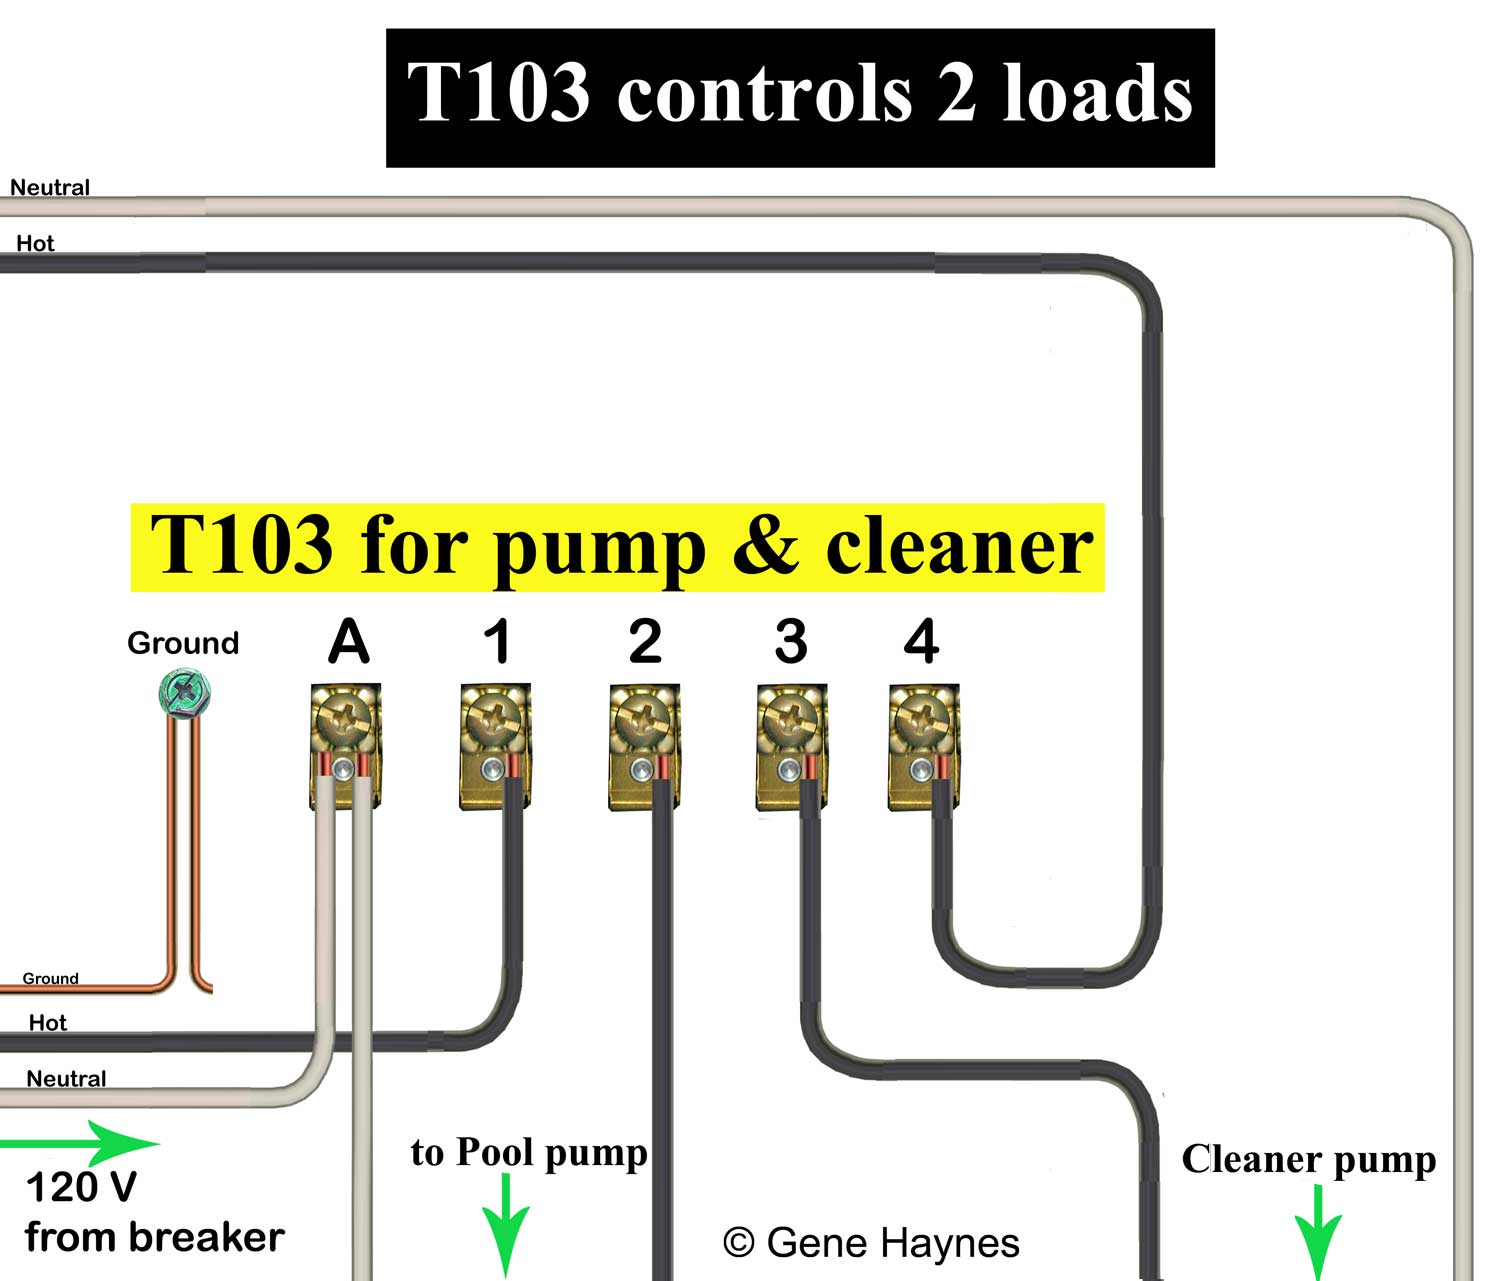 intermatic t103 wiring diagram Collection-Intermatic Pool Timer Wiring Diagram Best How to Wire T103 Timer New Intermatic Pool Wiring Diagram 8-o